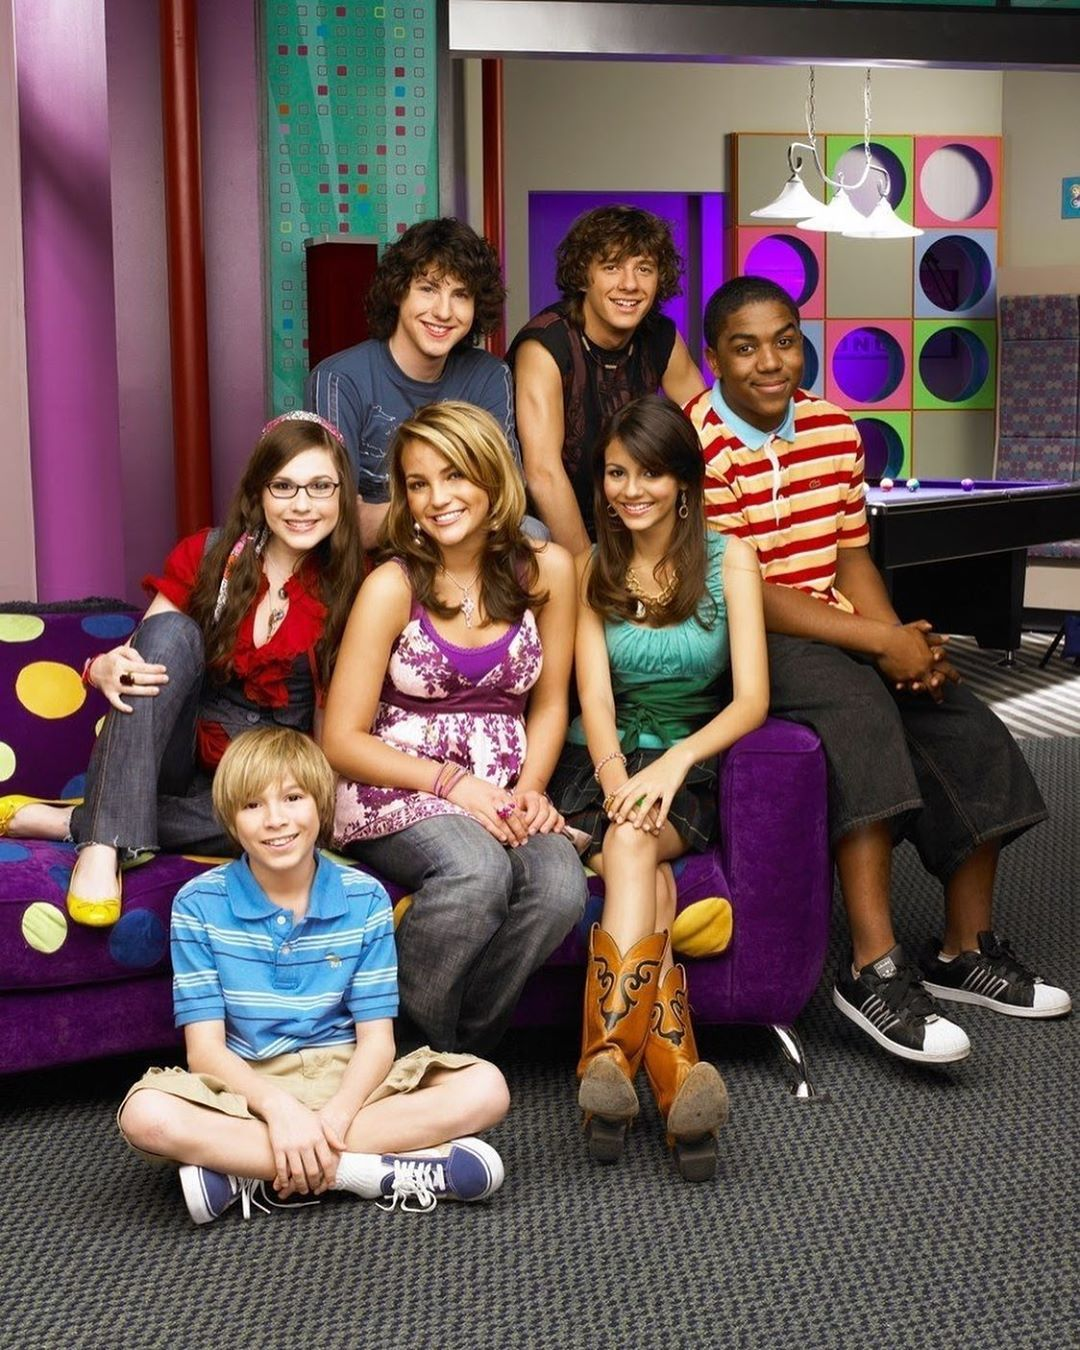 Zoey 101 S02 - Ep02 Time Capsule HD Watch - Dailymotion Video